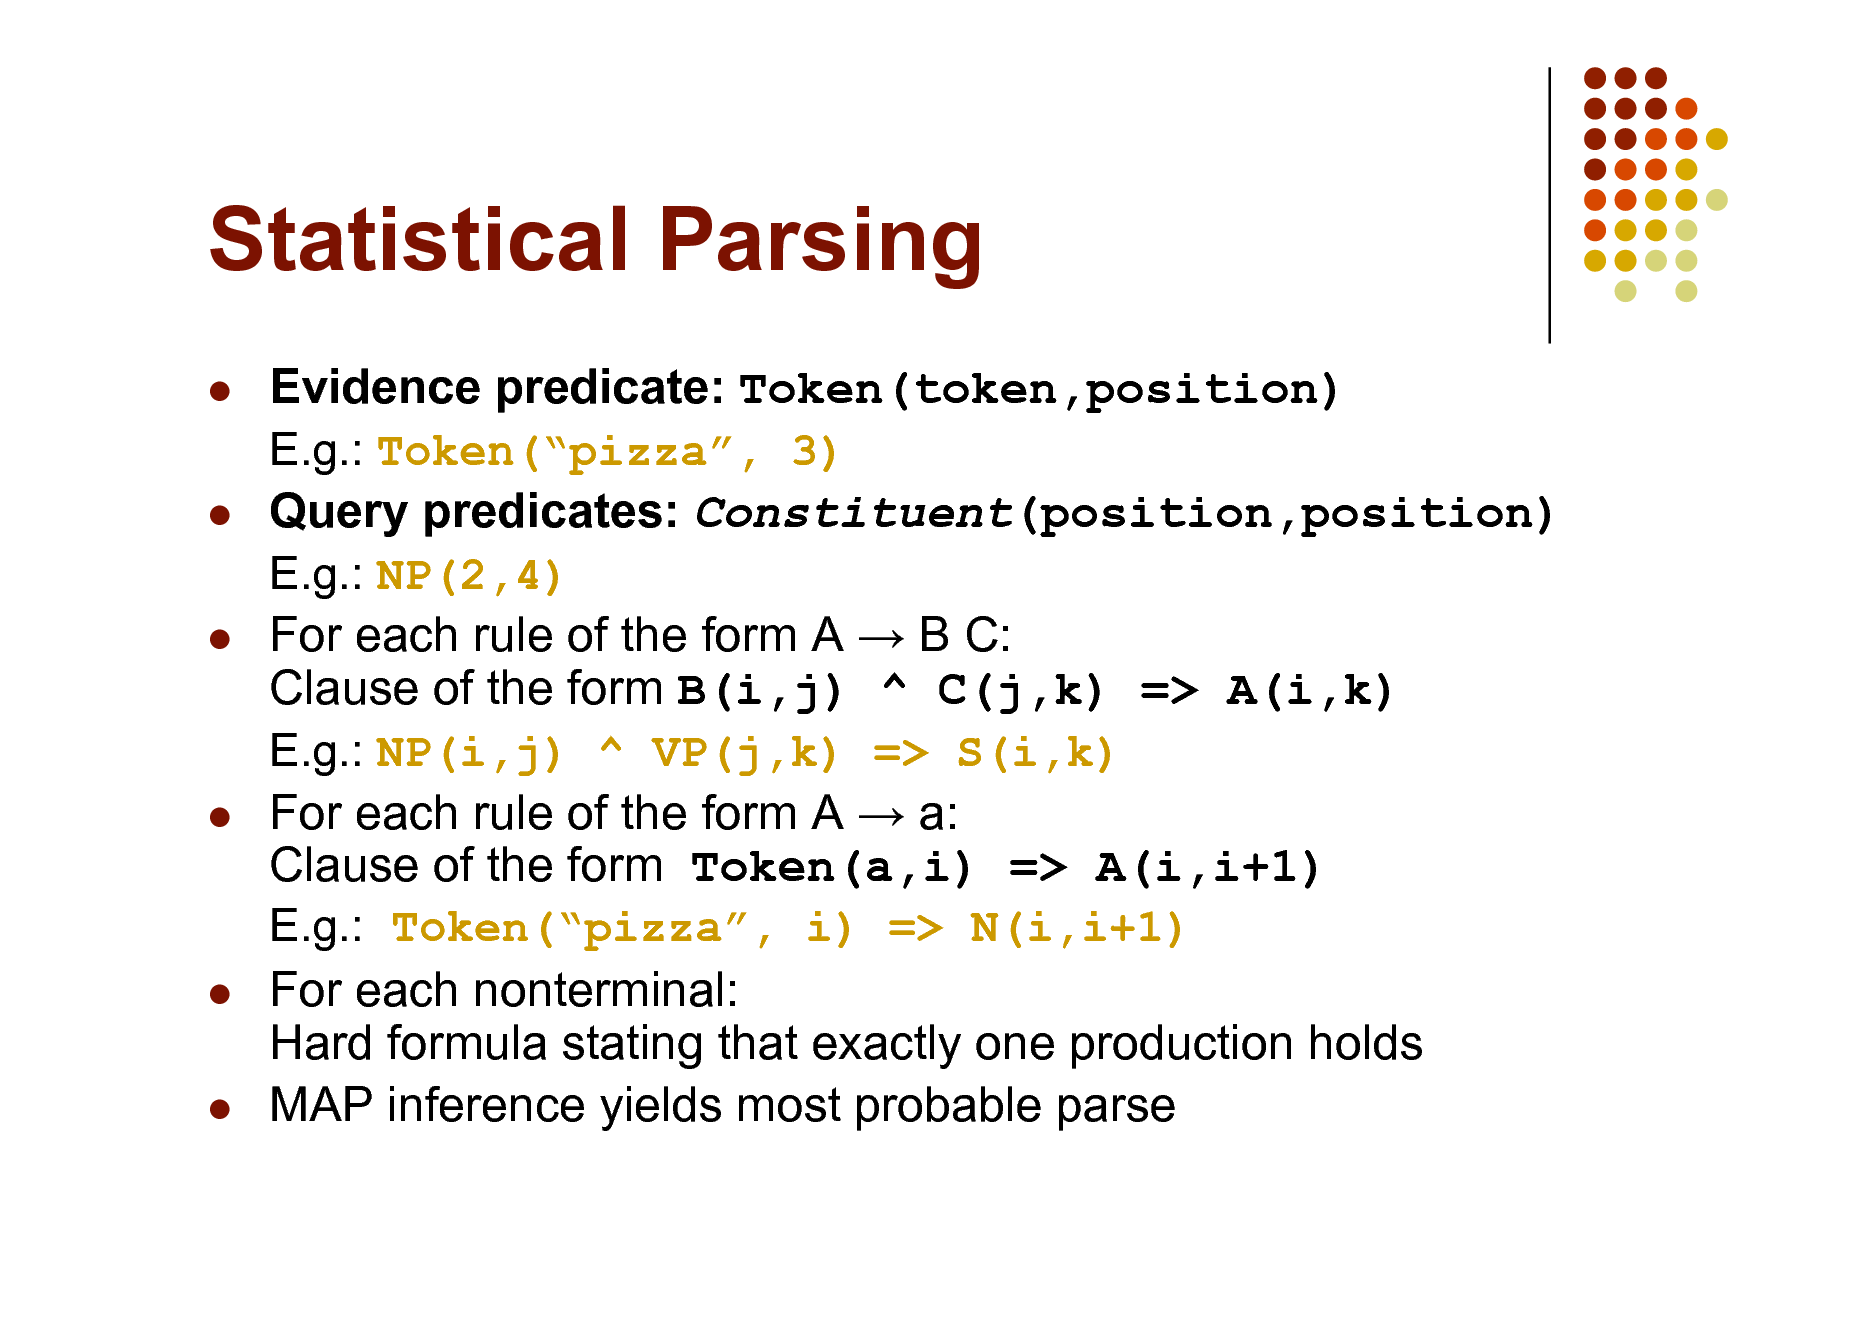 Slide: Statistical Parsing           Evidence predicate: Token(token,position) E.g.: Token(pizza, 3) Query predicates: Constituent(position,position) E.g.: NP(2,4) For each rule of the form A  B C: Clause of the form B(i,j) ^ C(j,k) => A(i,k) E.g.: NP(i,j) ^ VP(j,k) => S(i,k) For each rule of the form A  a: Clause of the form Token(a,i) => A(i,i+1) E.g.: Token(pizza, i) => N(i,i+1) For each nonterminal: Hard formula stating that exactly one production holds MAP inference yields most probable parse